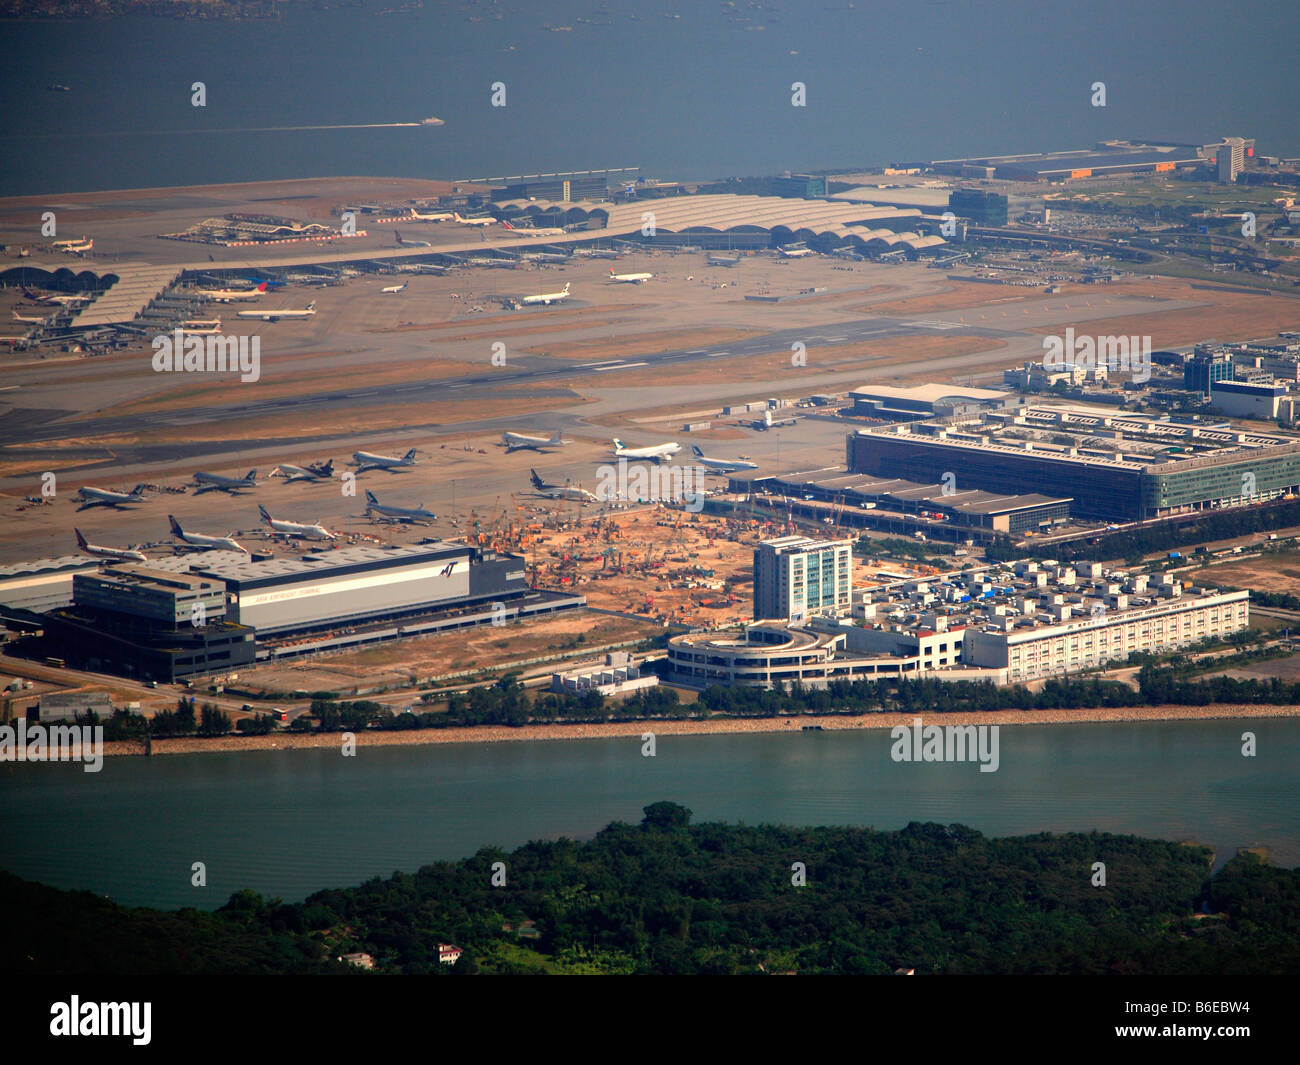 China Hong Kong Chek Lap Kok International Airport aerial view Stock Photo